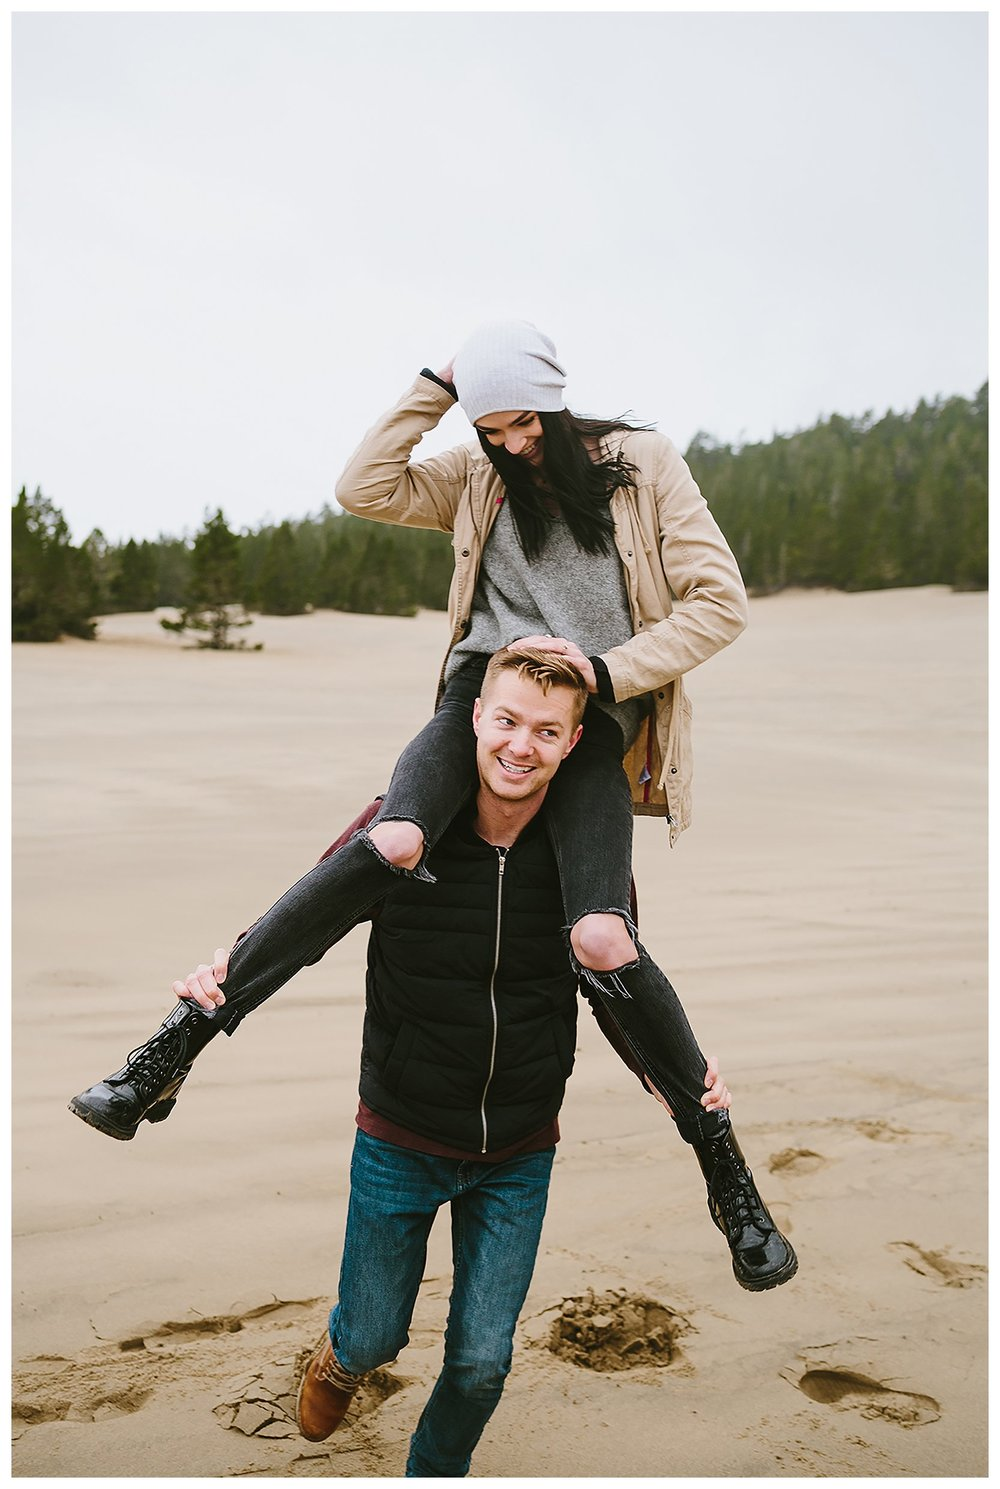 utah colorado montana oregon washington photographer rocky mountain rockies engagement session sand dunes dayna grace photography utah photographer_0145.jpg